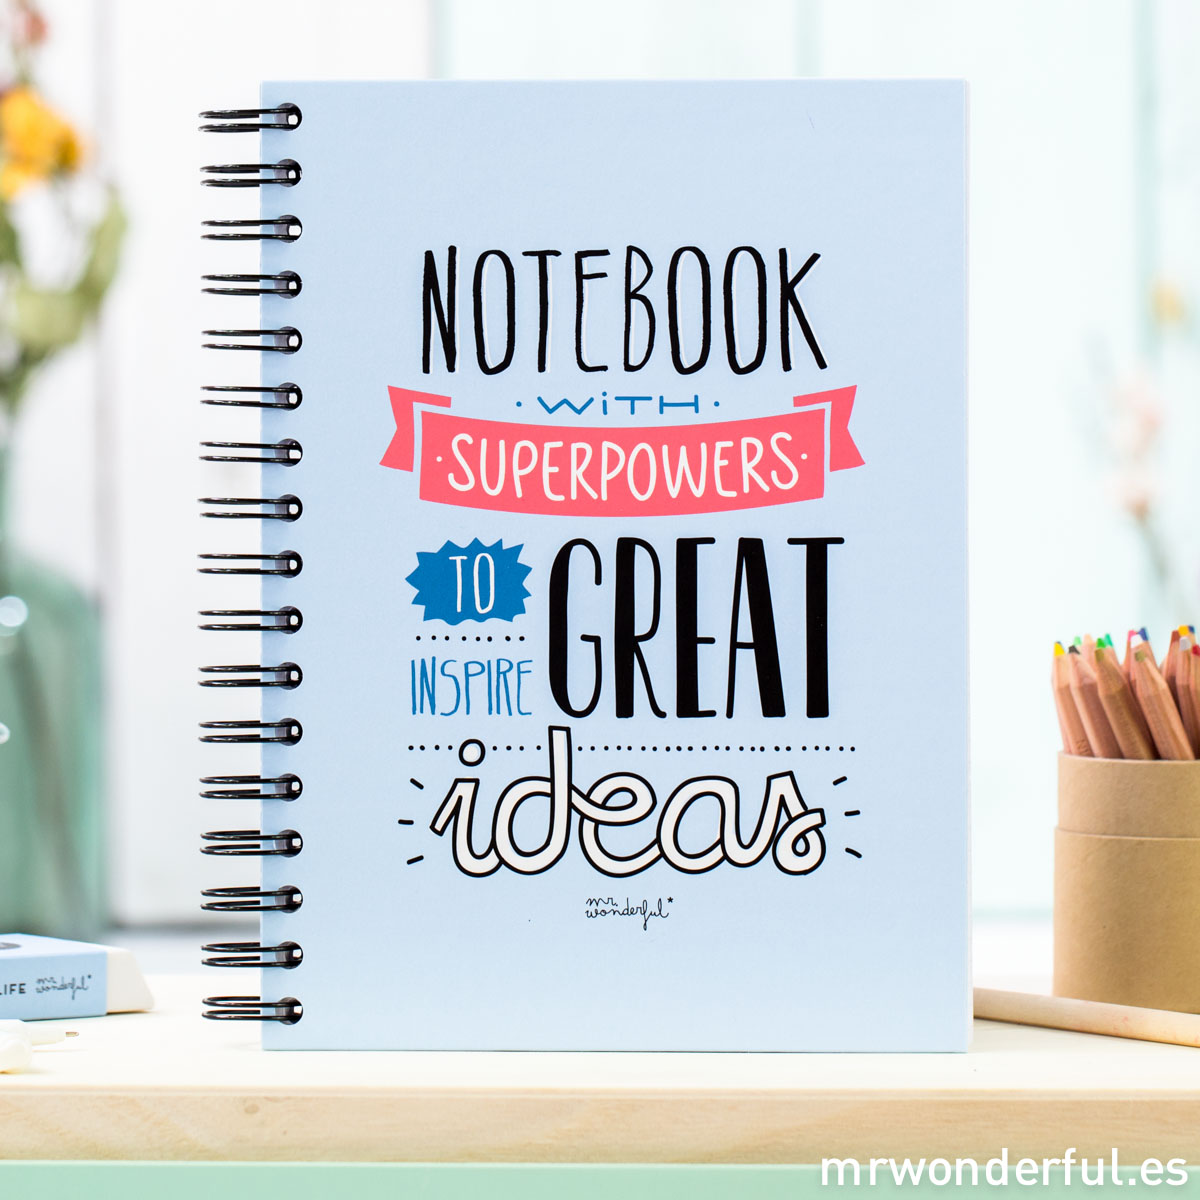 mrwonderful_LIB23A_libreta-color_superpowers-great-ideas-1